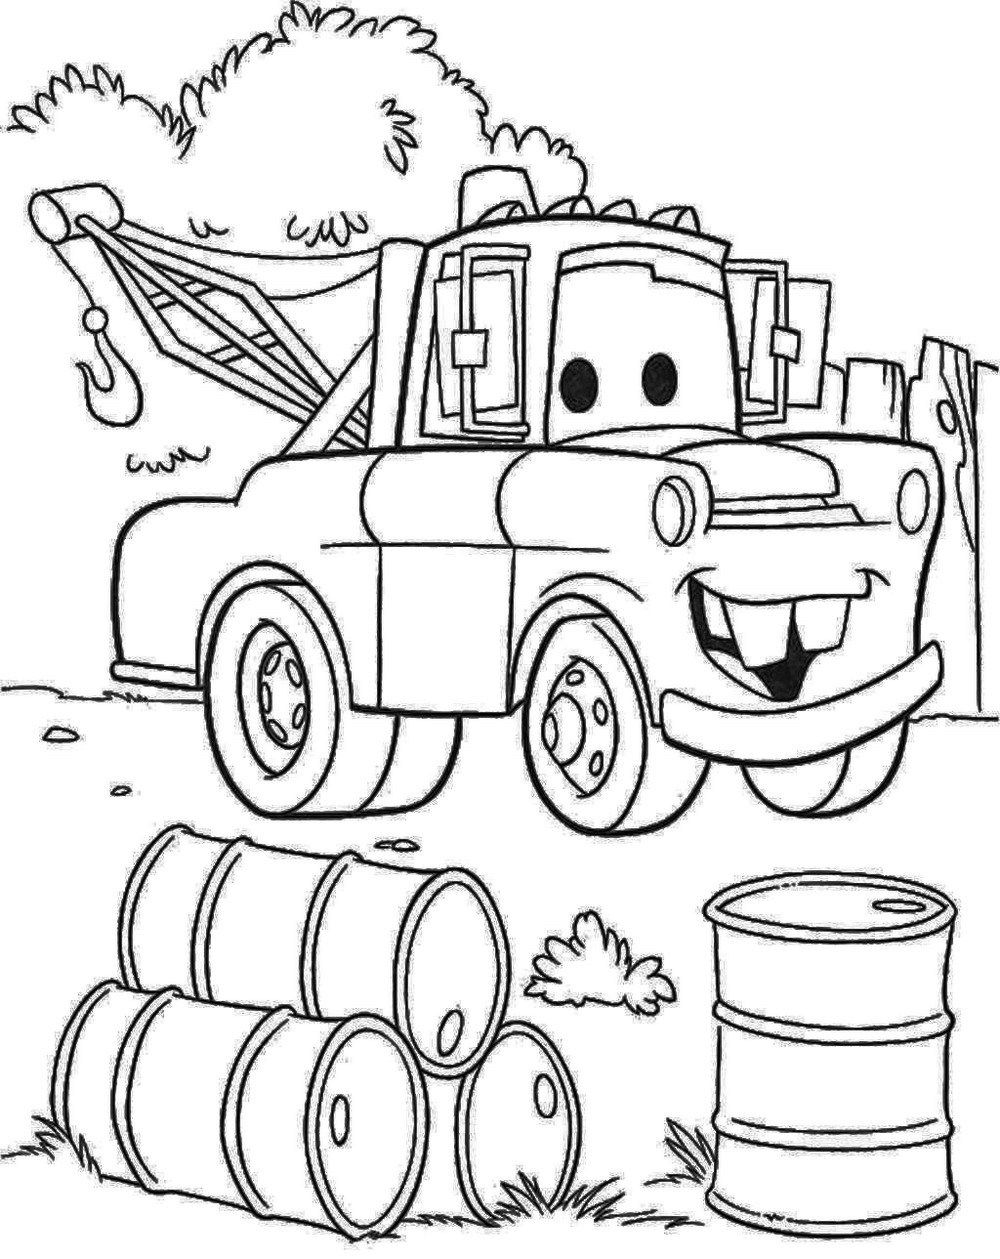 Mater Car Disney Pixar Cars Coloring Pages Truck Coloring Pages